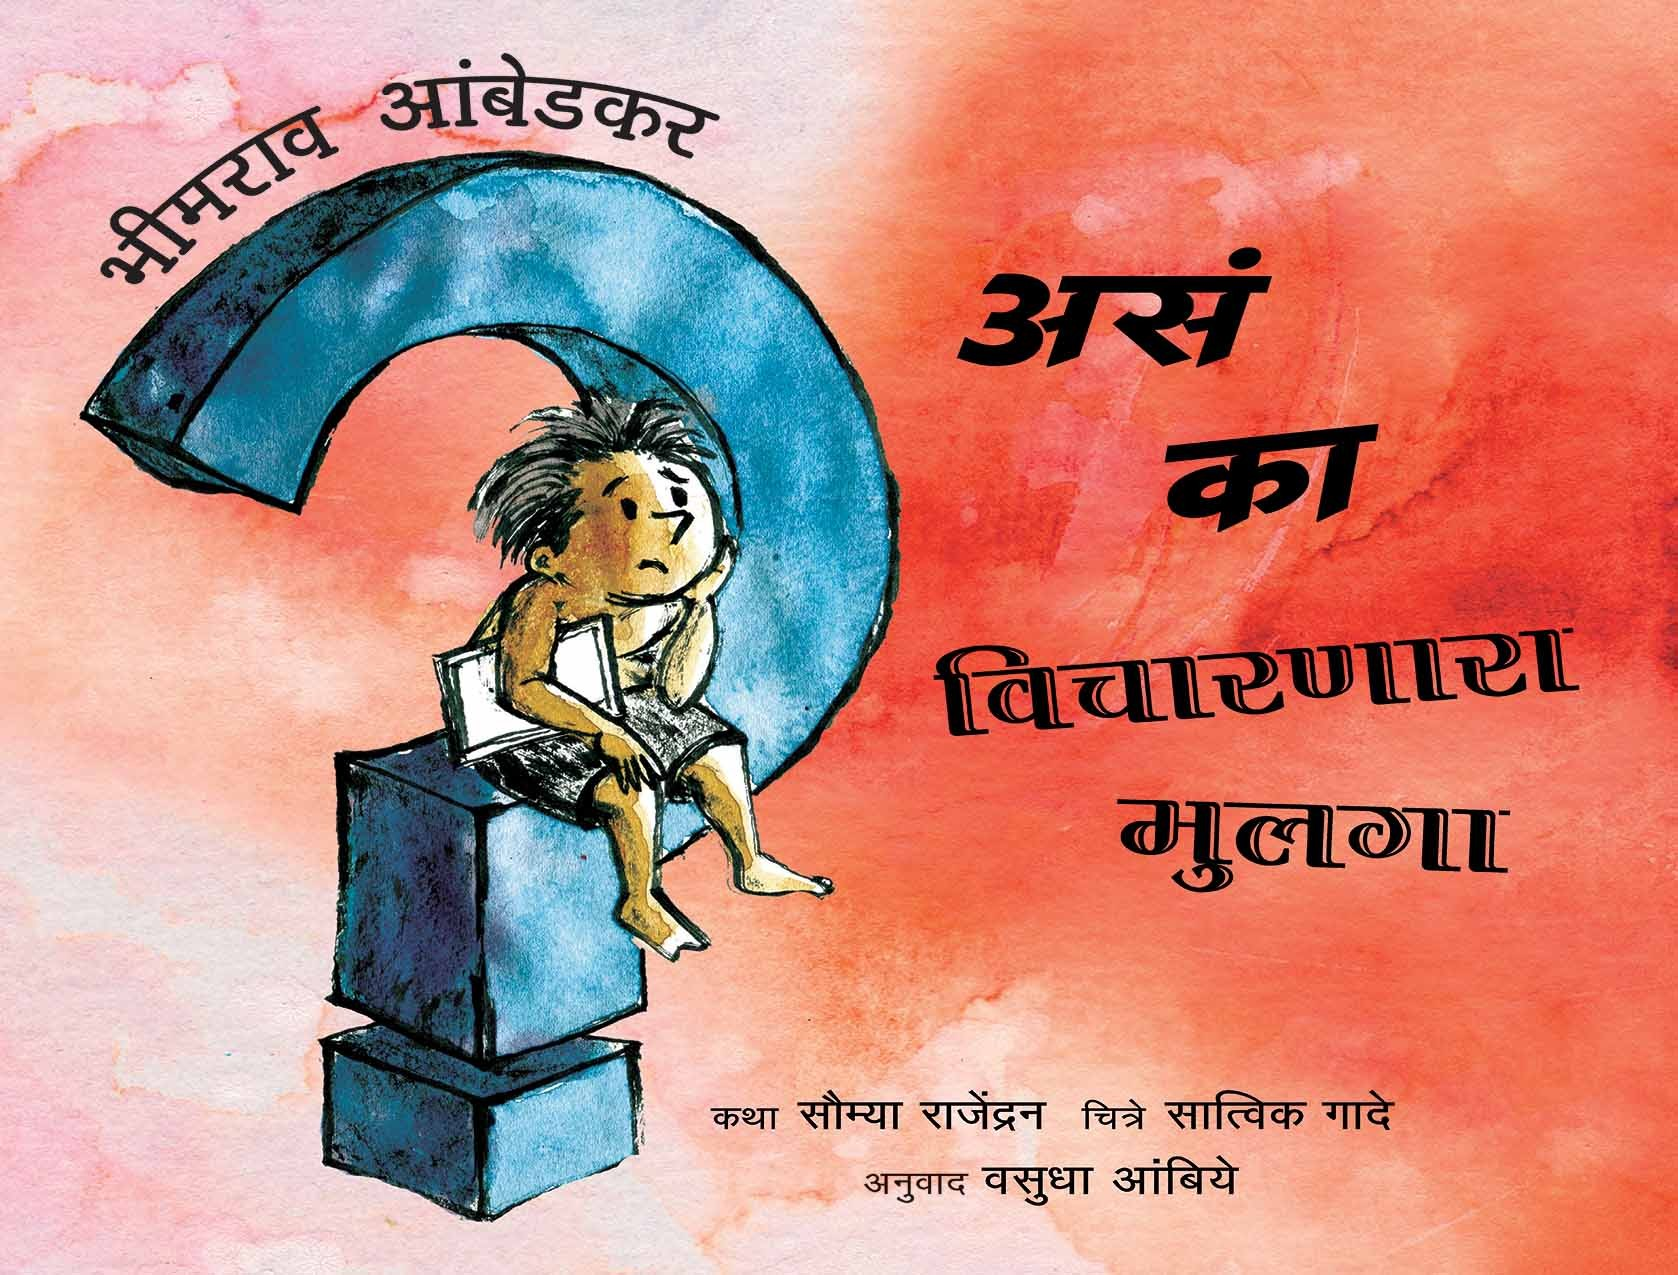 Bhimrao Ambedkar: The Boy Who Asked Why/Bhimrao Ambedkar: Asa Kaa Vicharnara Mulga (Marathi)